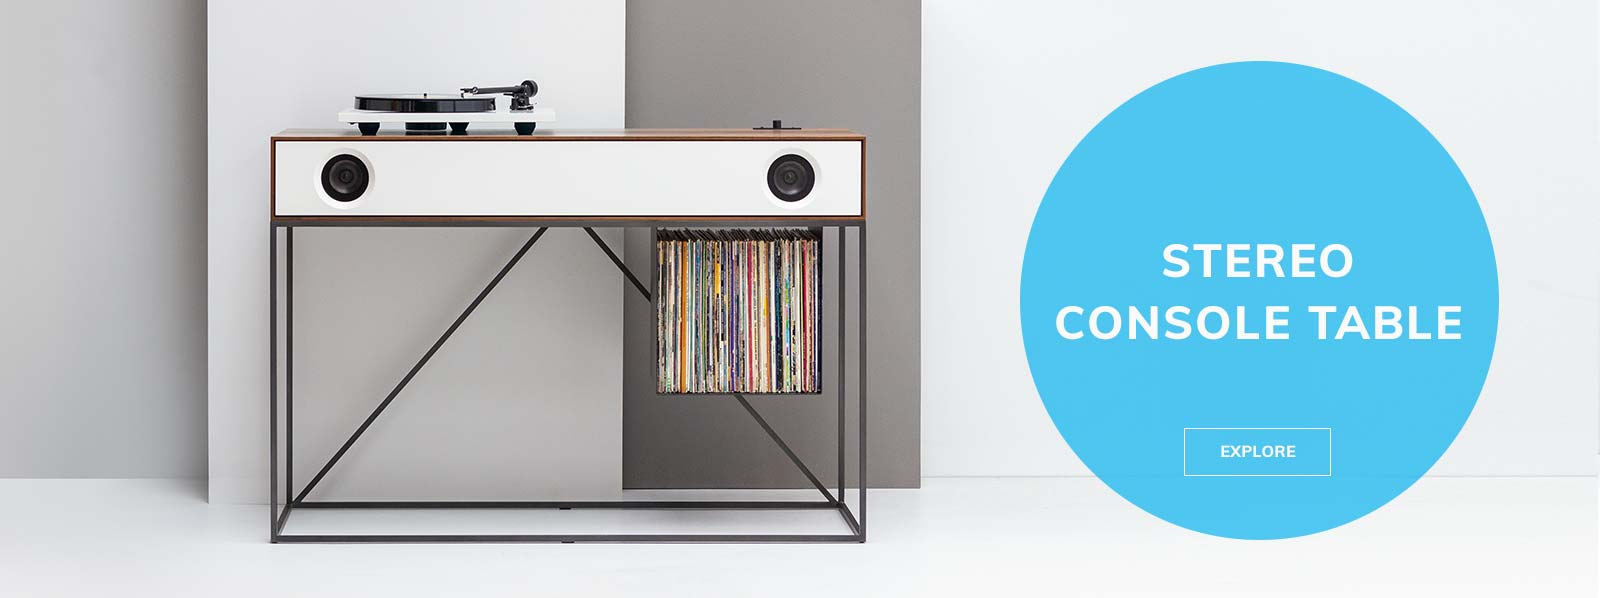 Stereo Console Table Record Player